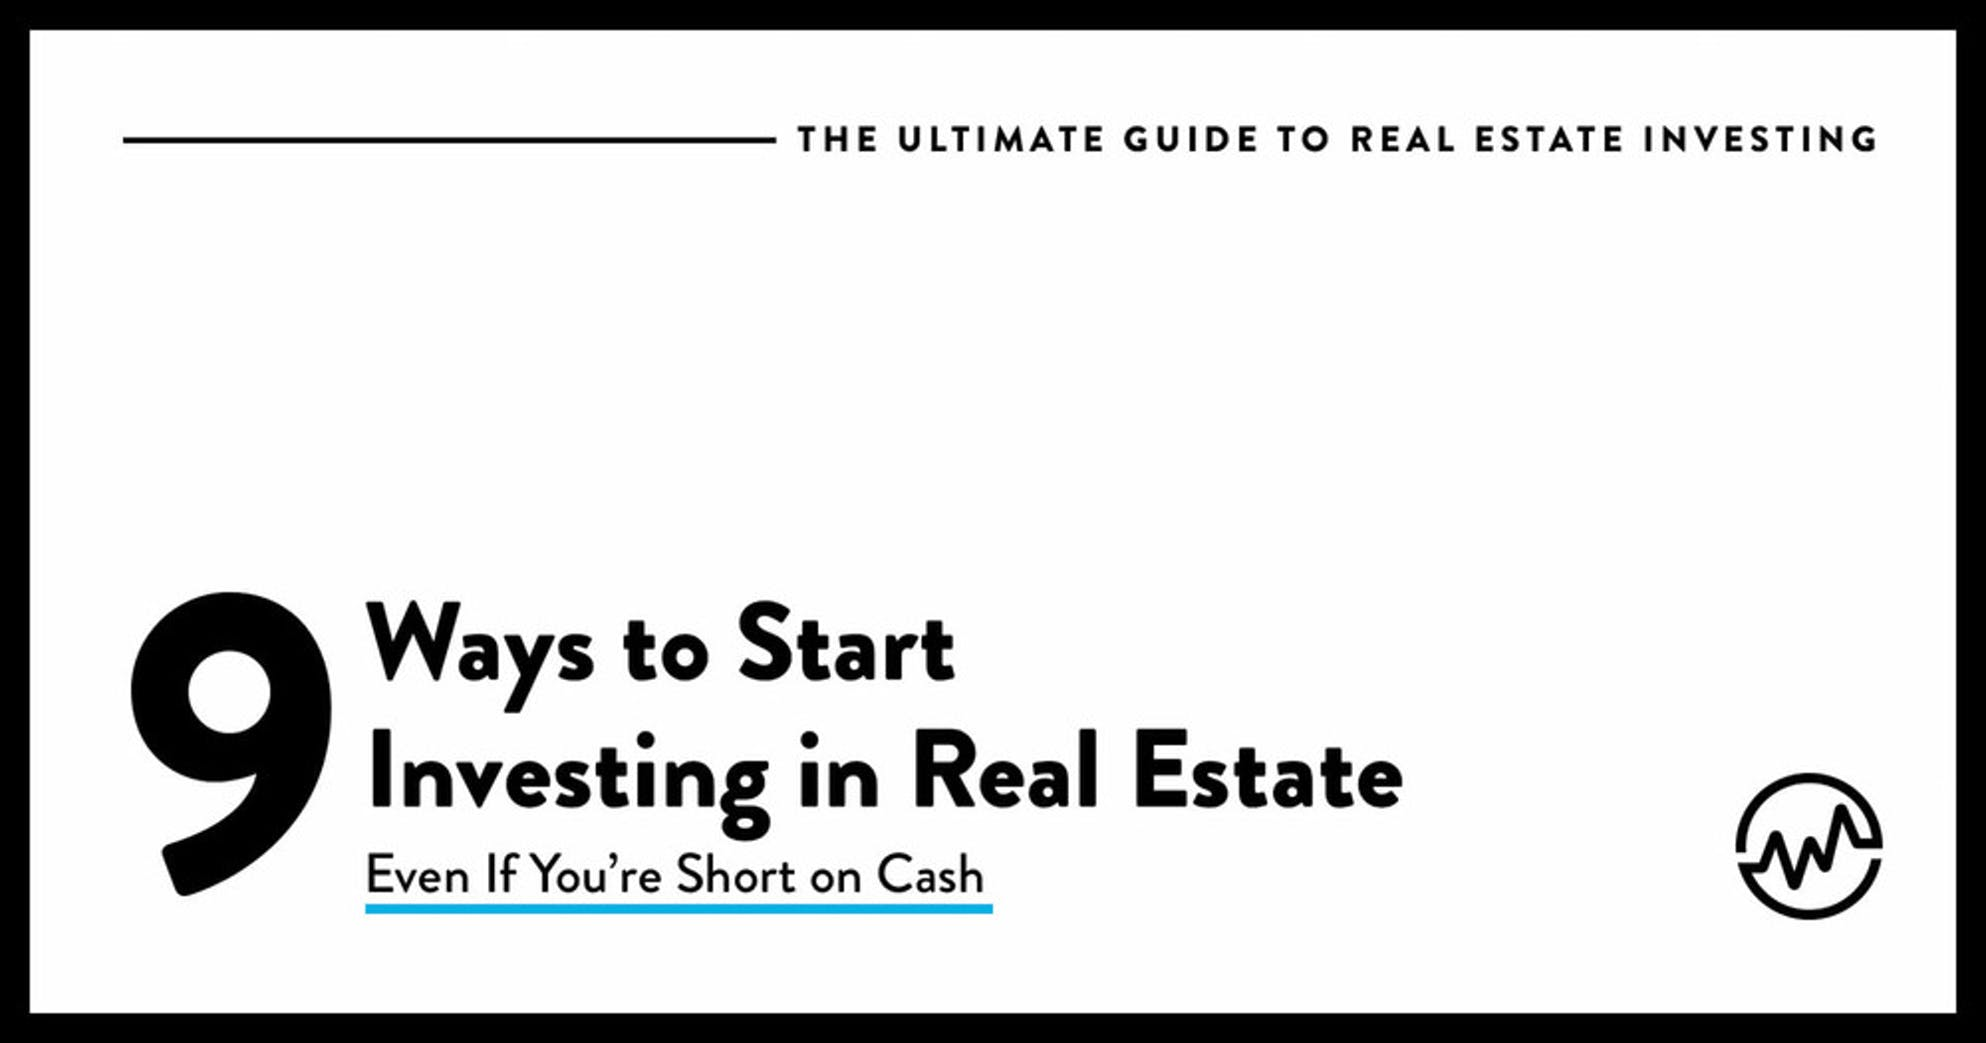 9 ways to start investing in real estate